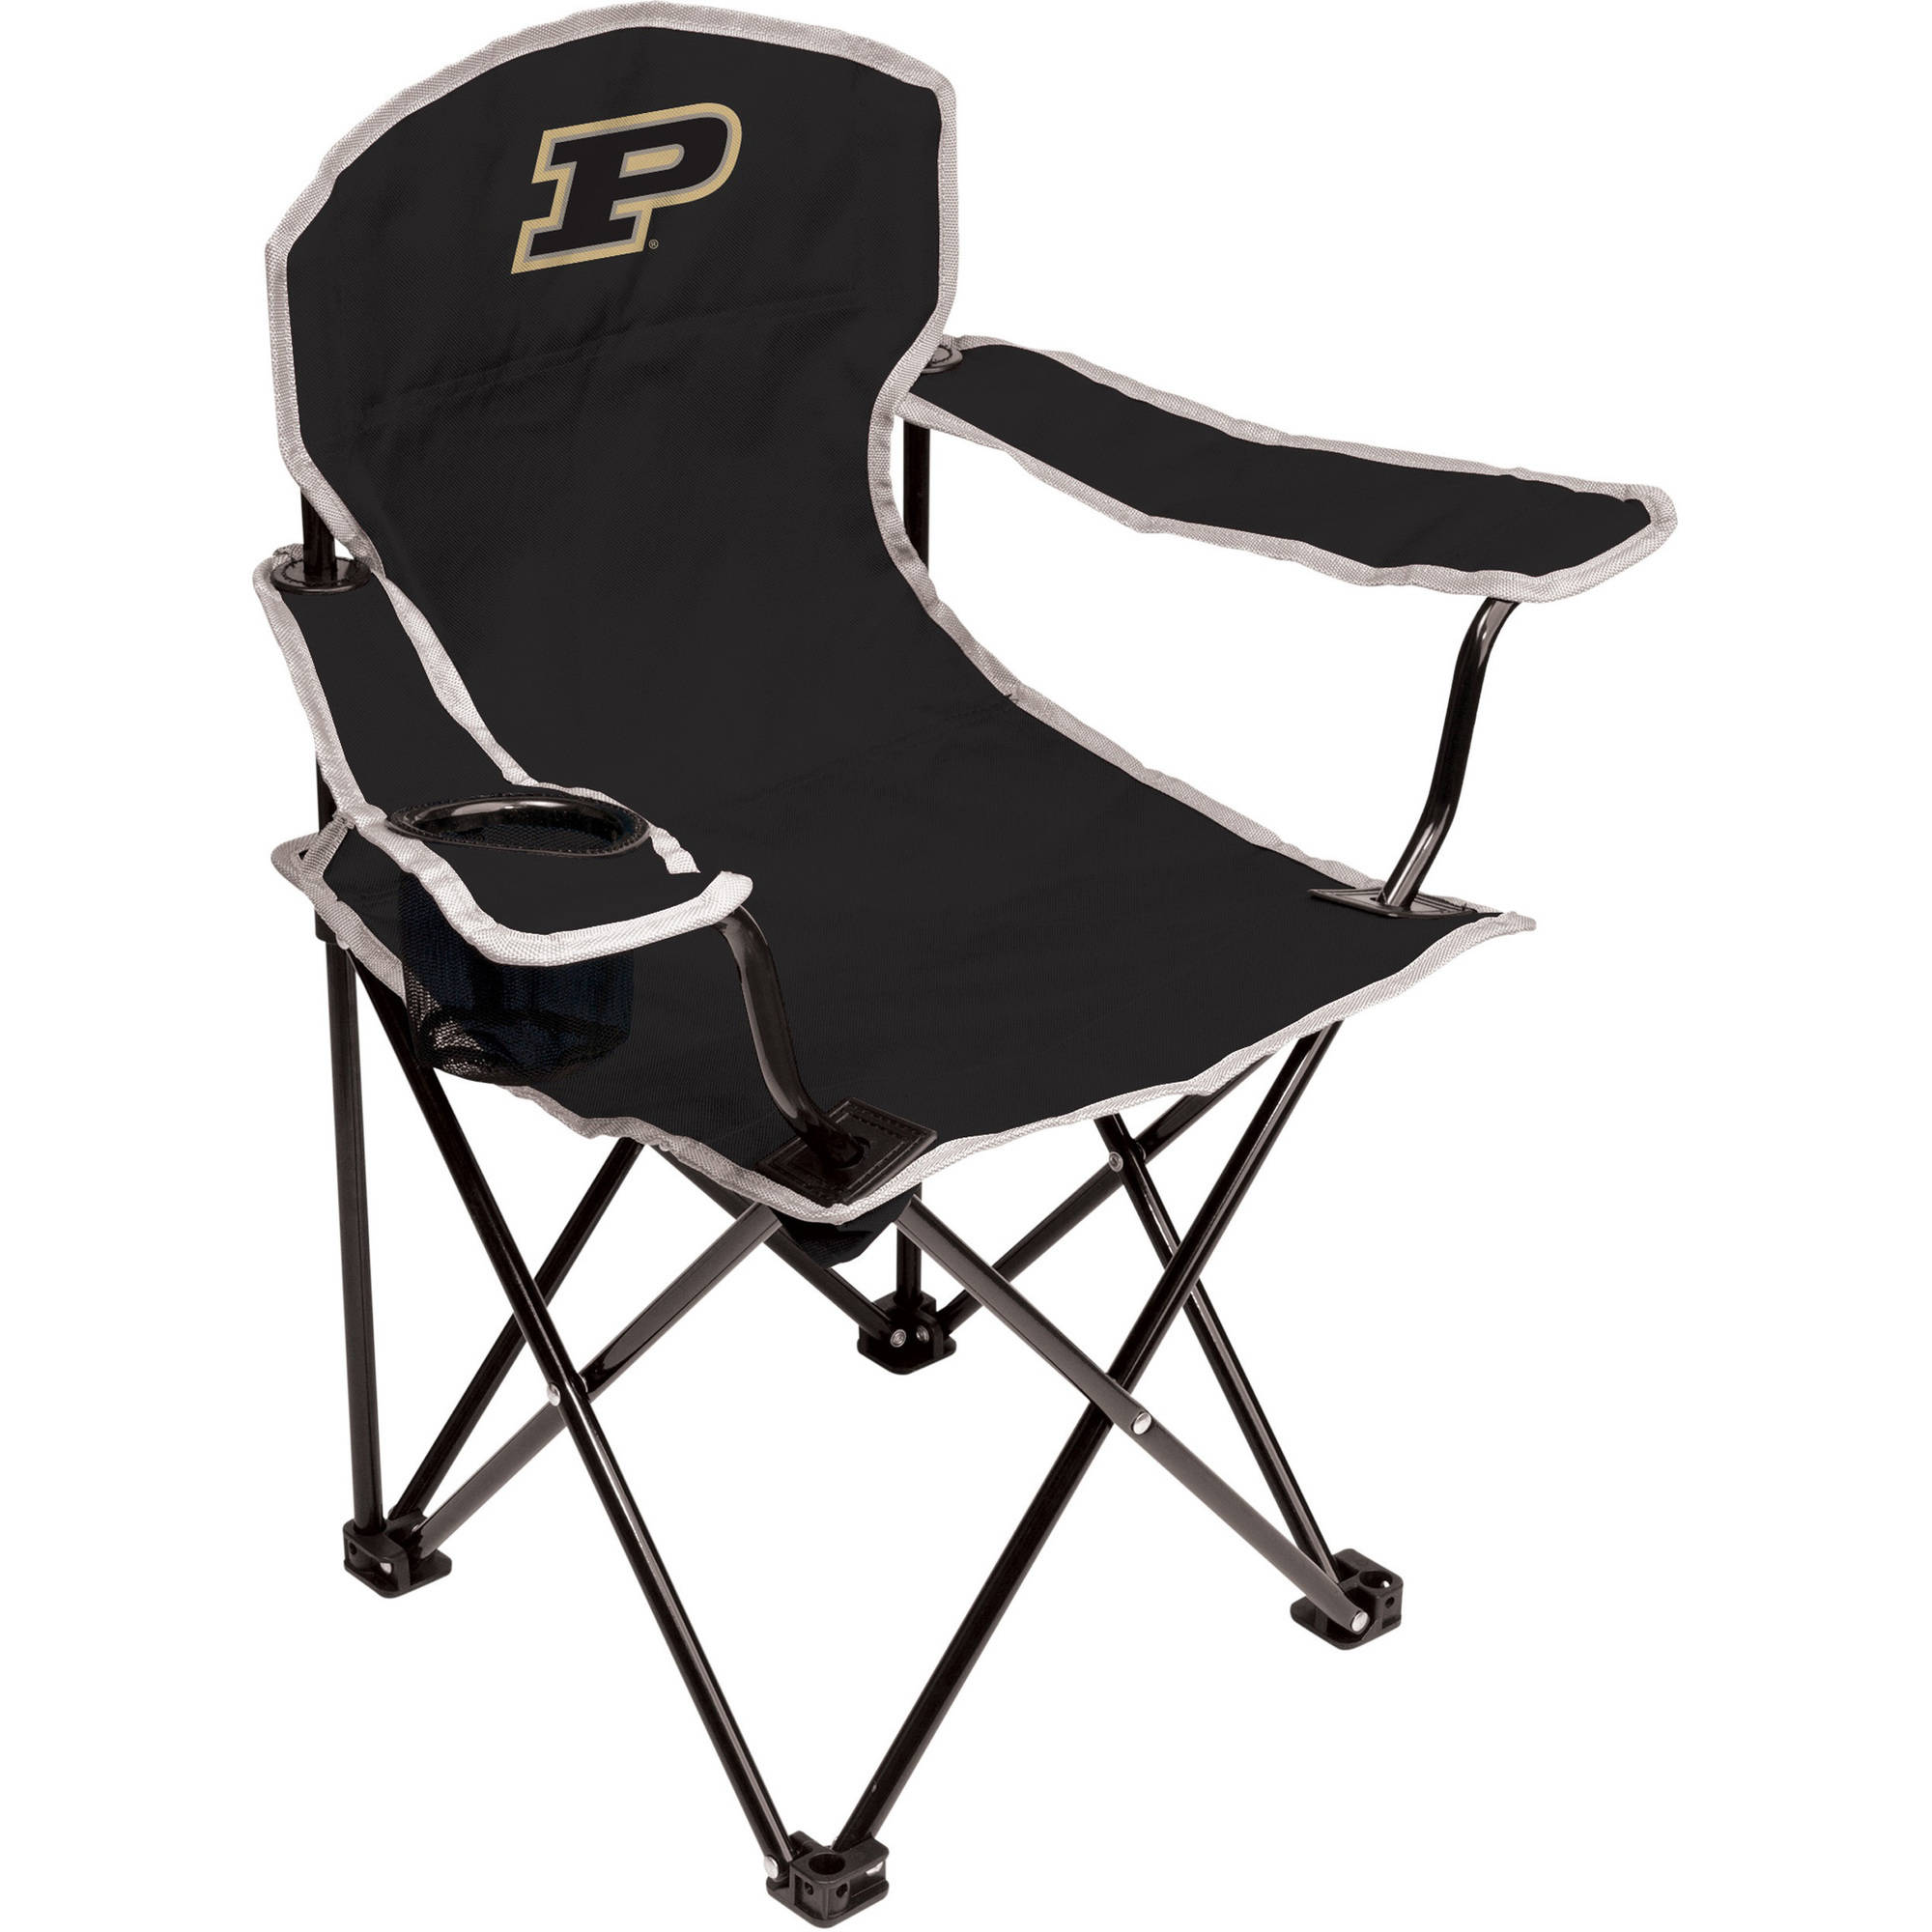 NCAA Purdue Boilermakers Youth Size Tailgate Chair from Coleman by Rawlings